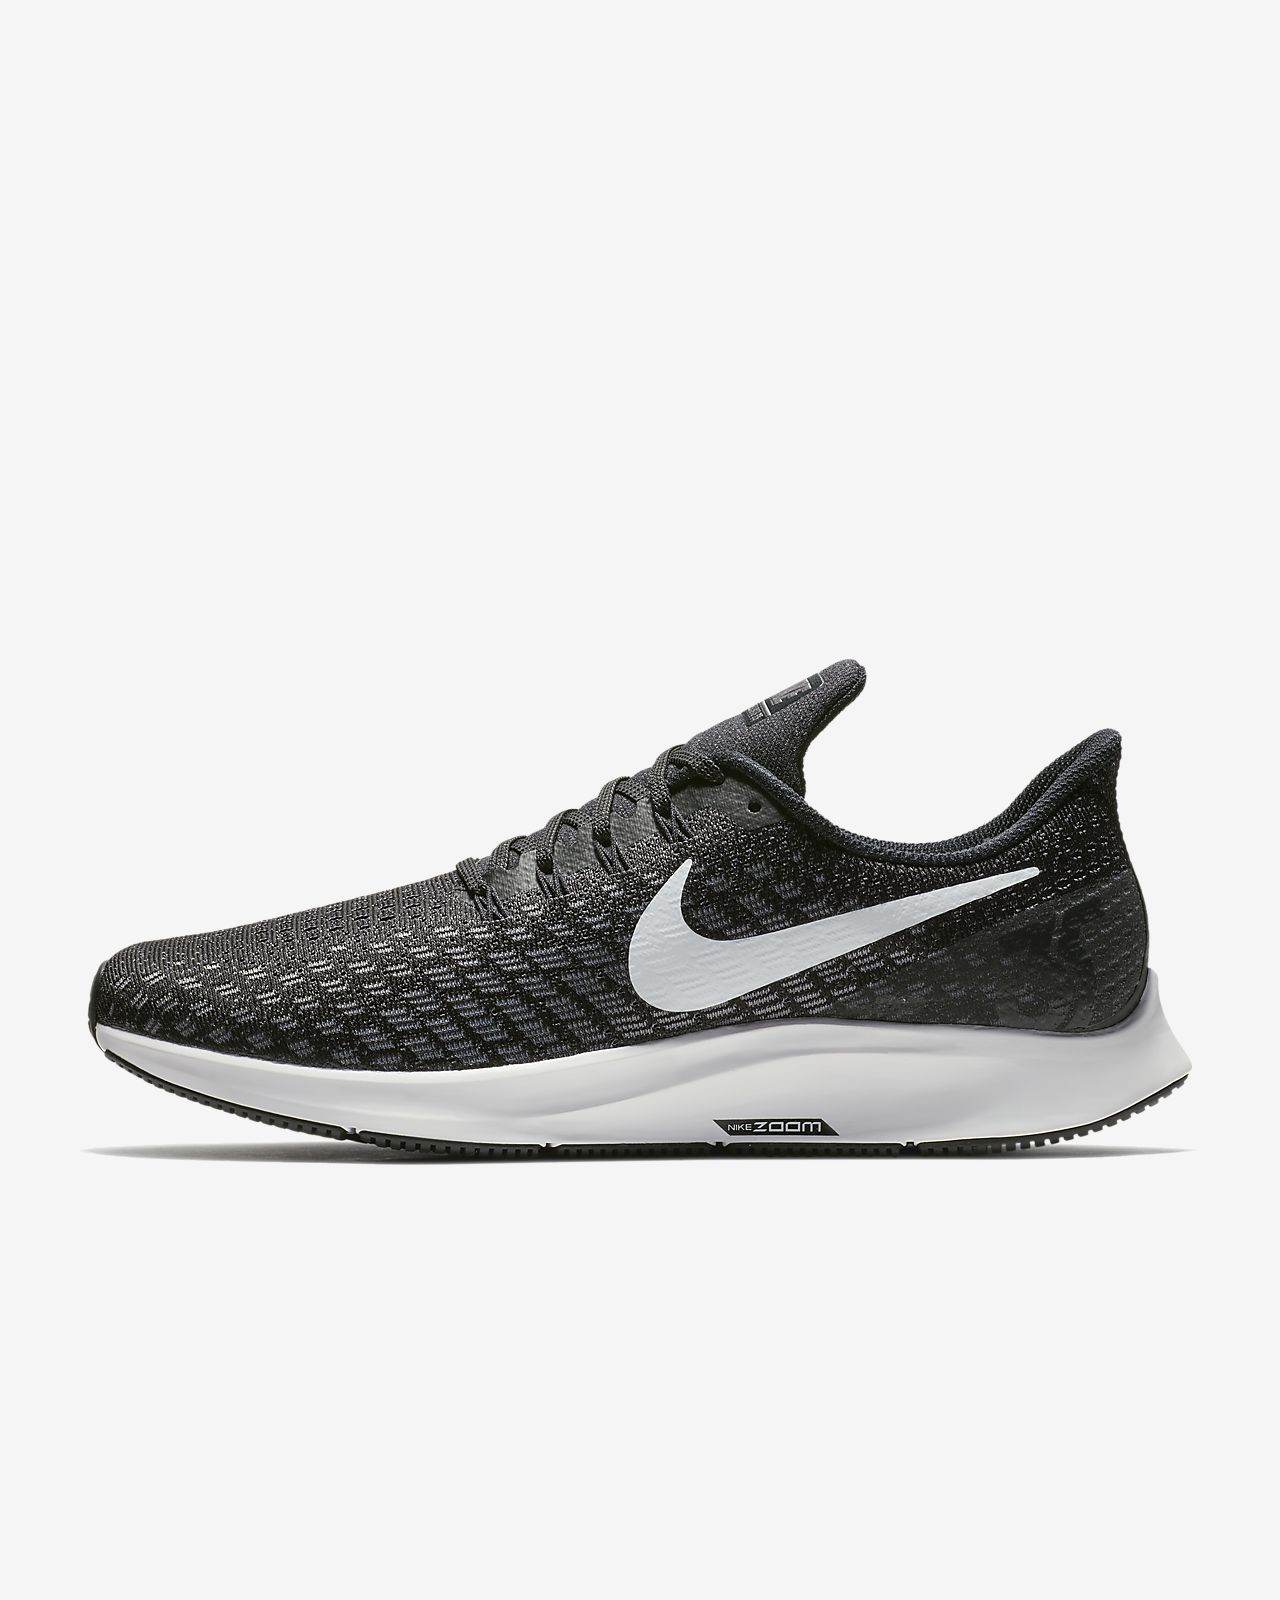 premium selection eb9b1 a57cf Nike Air Zoom Pegasus 35 Men's Running Shoe. Nike.com